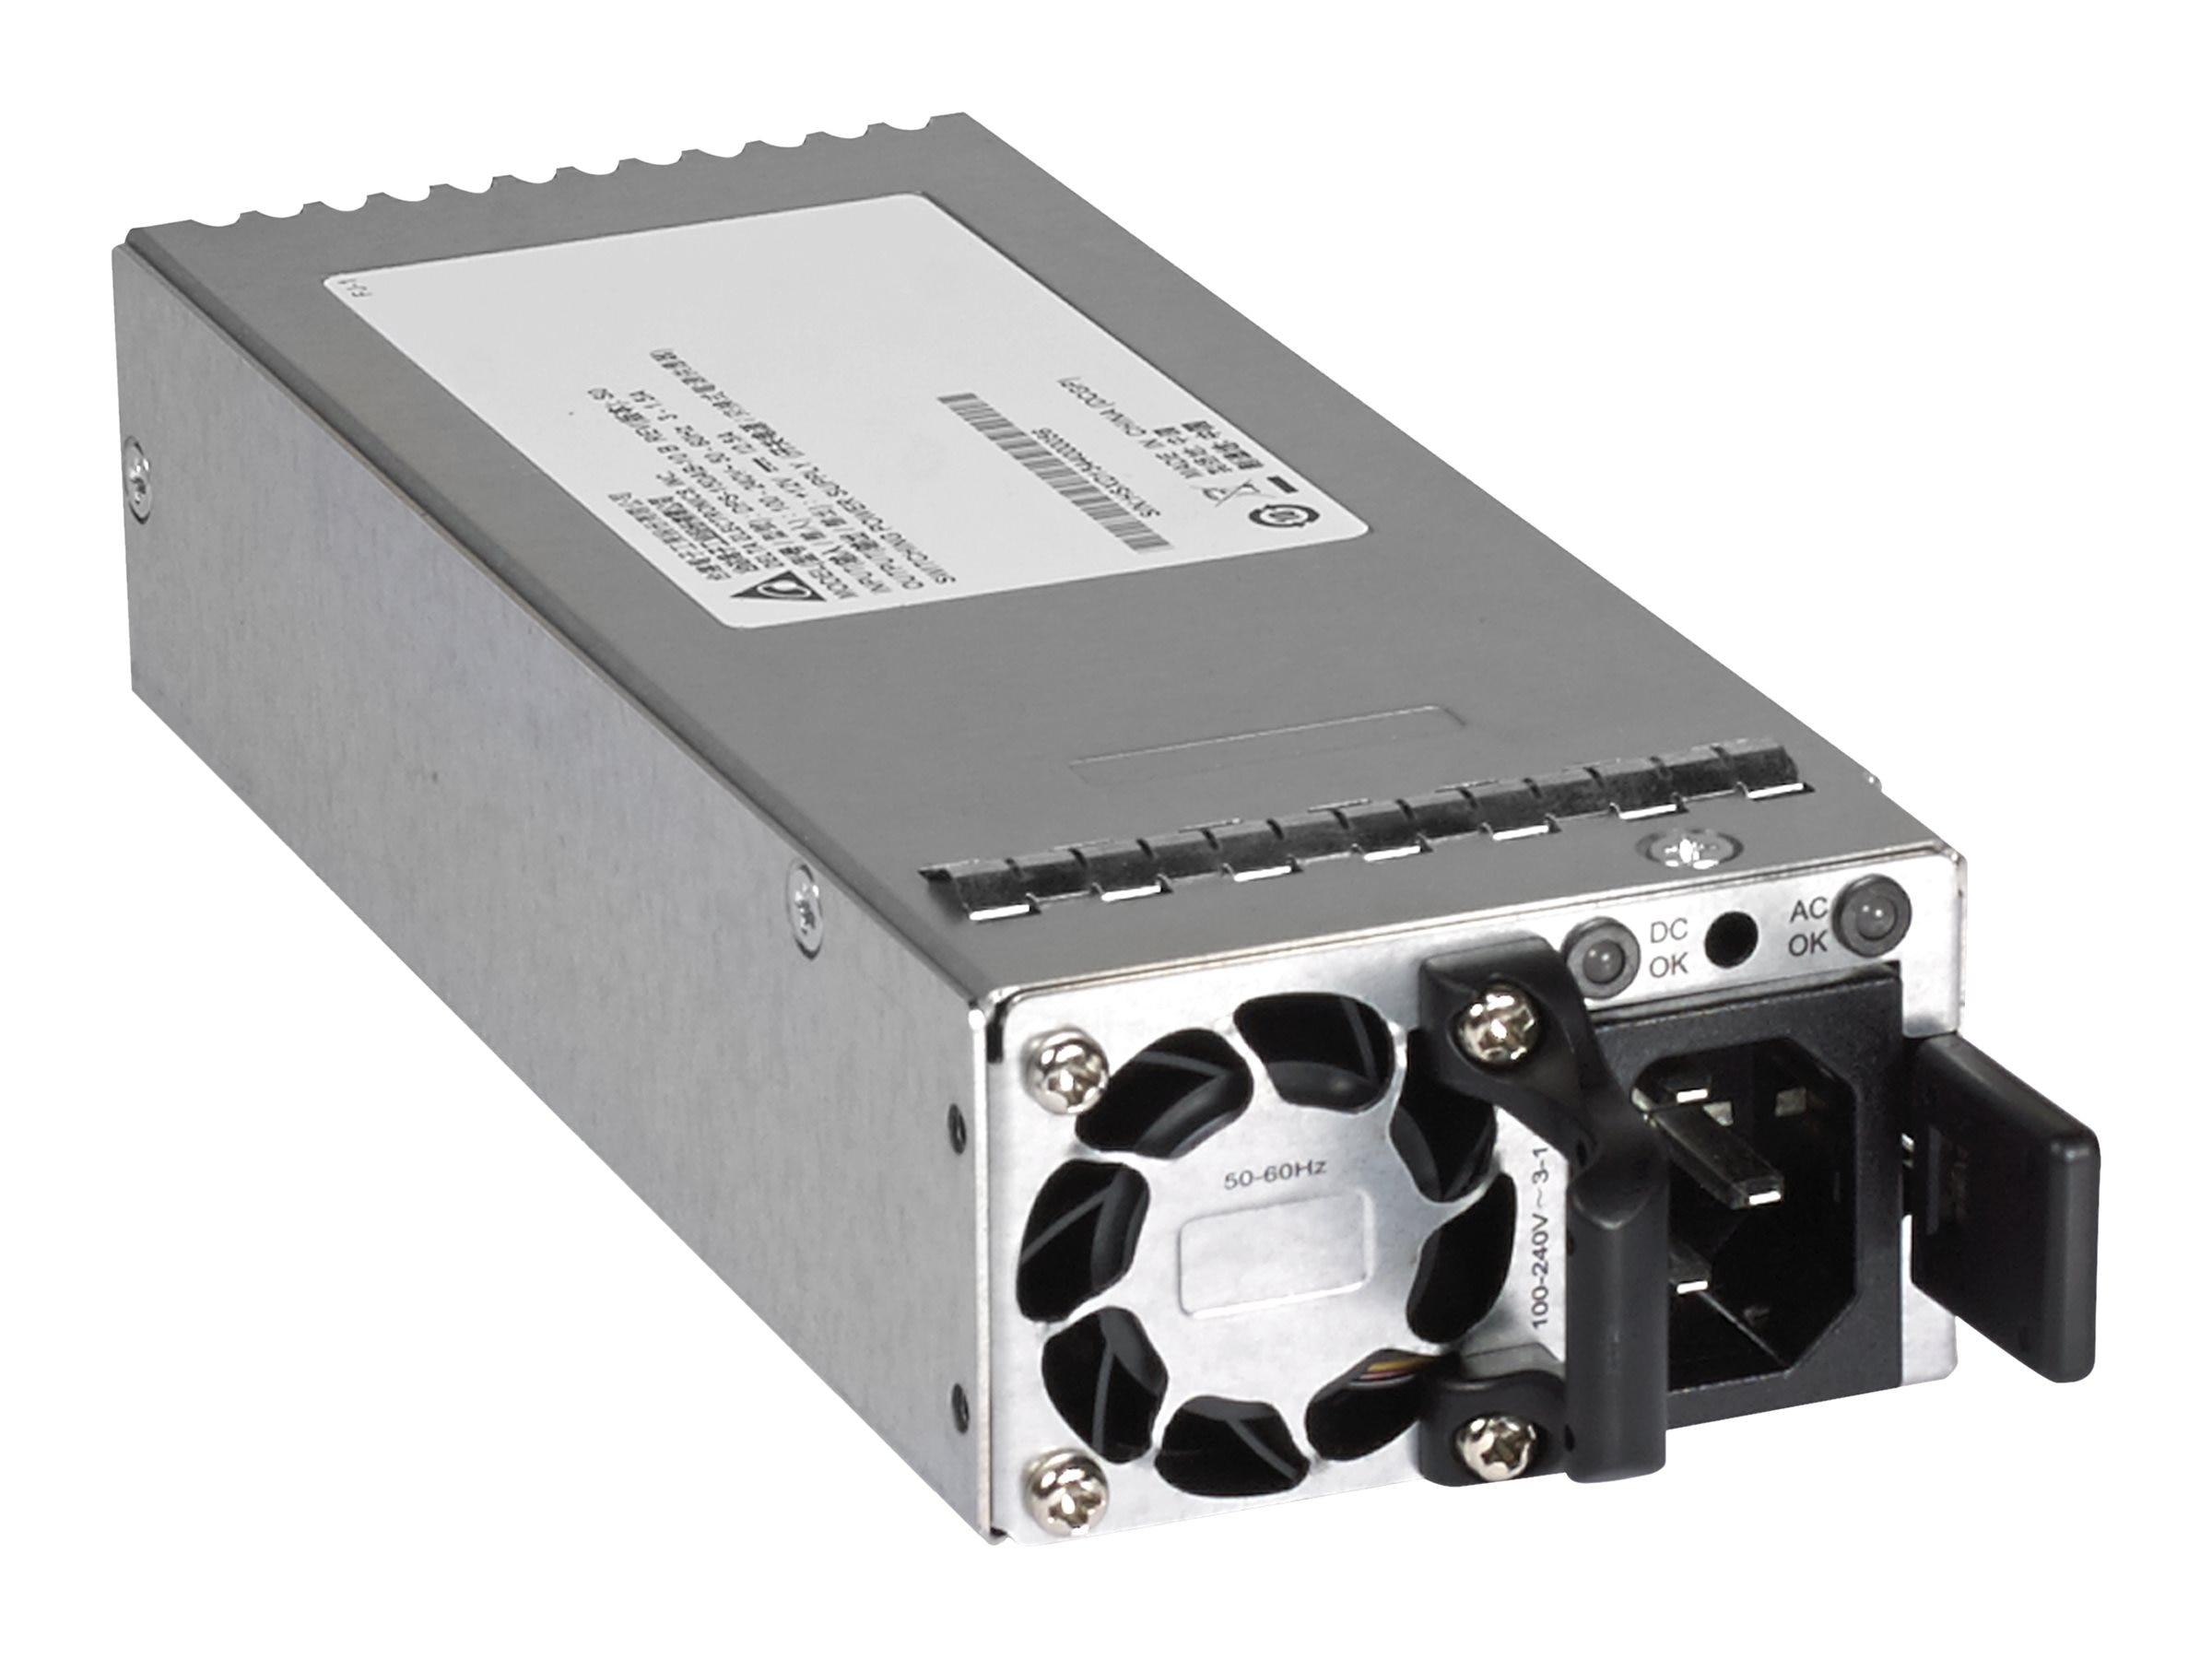 Netgear ProSafe 150W Power Module for M4300-28G 52G, APS150W-100NES, 31750242, Network Device Modules & Accessories